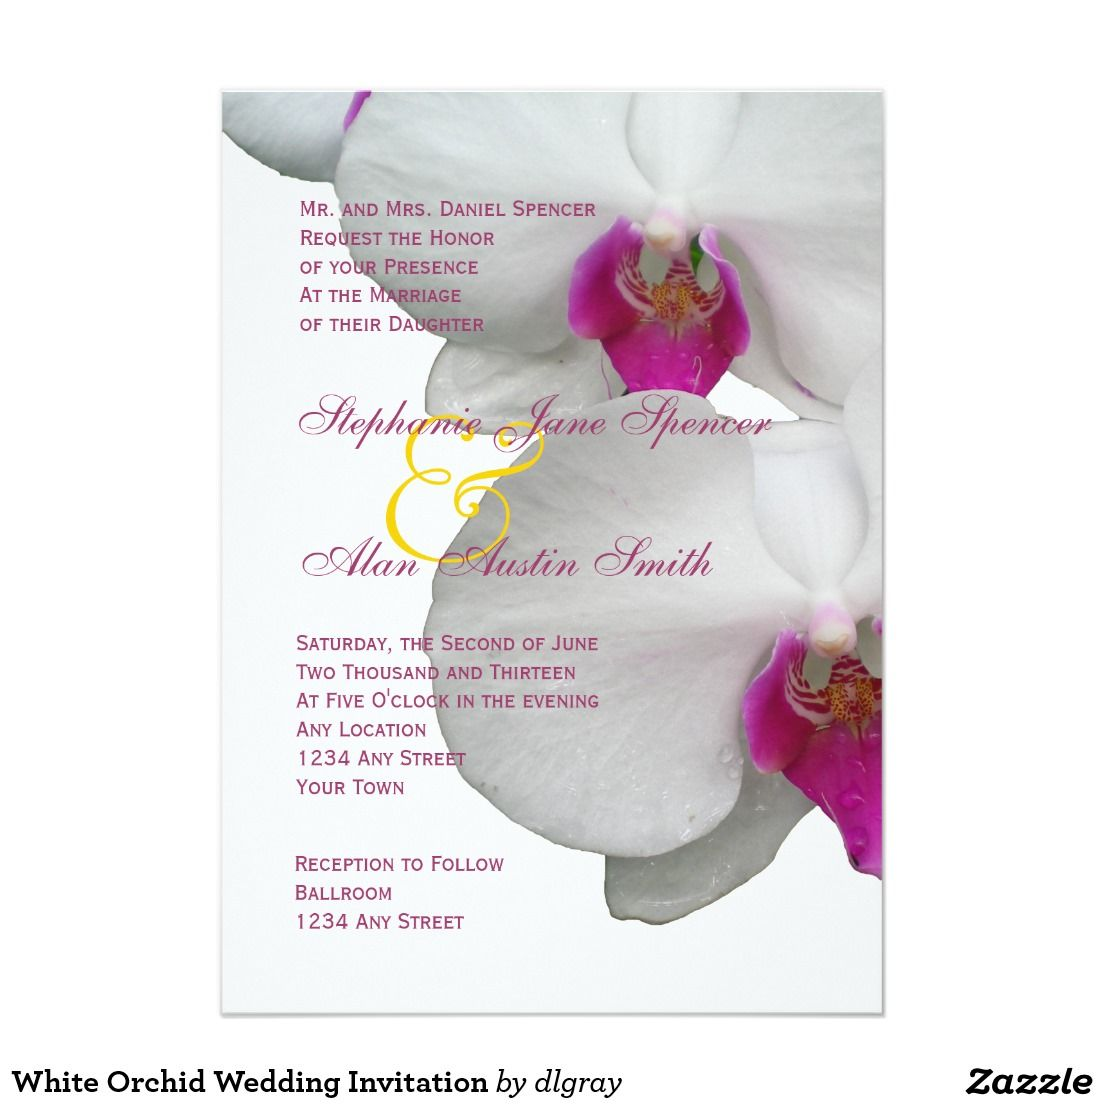 White Orchid Wedding Invitation | Orchid wedding invitations, White ...